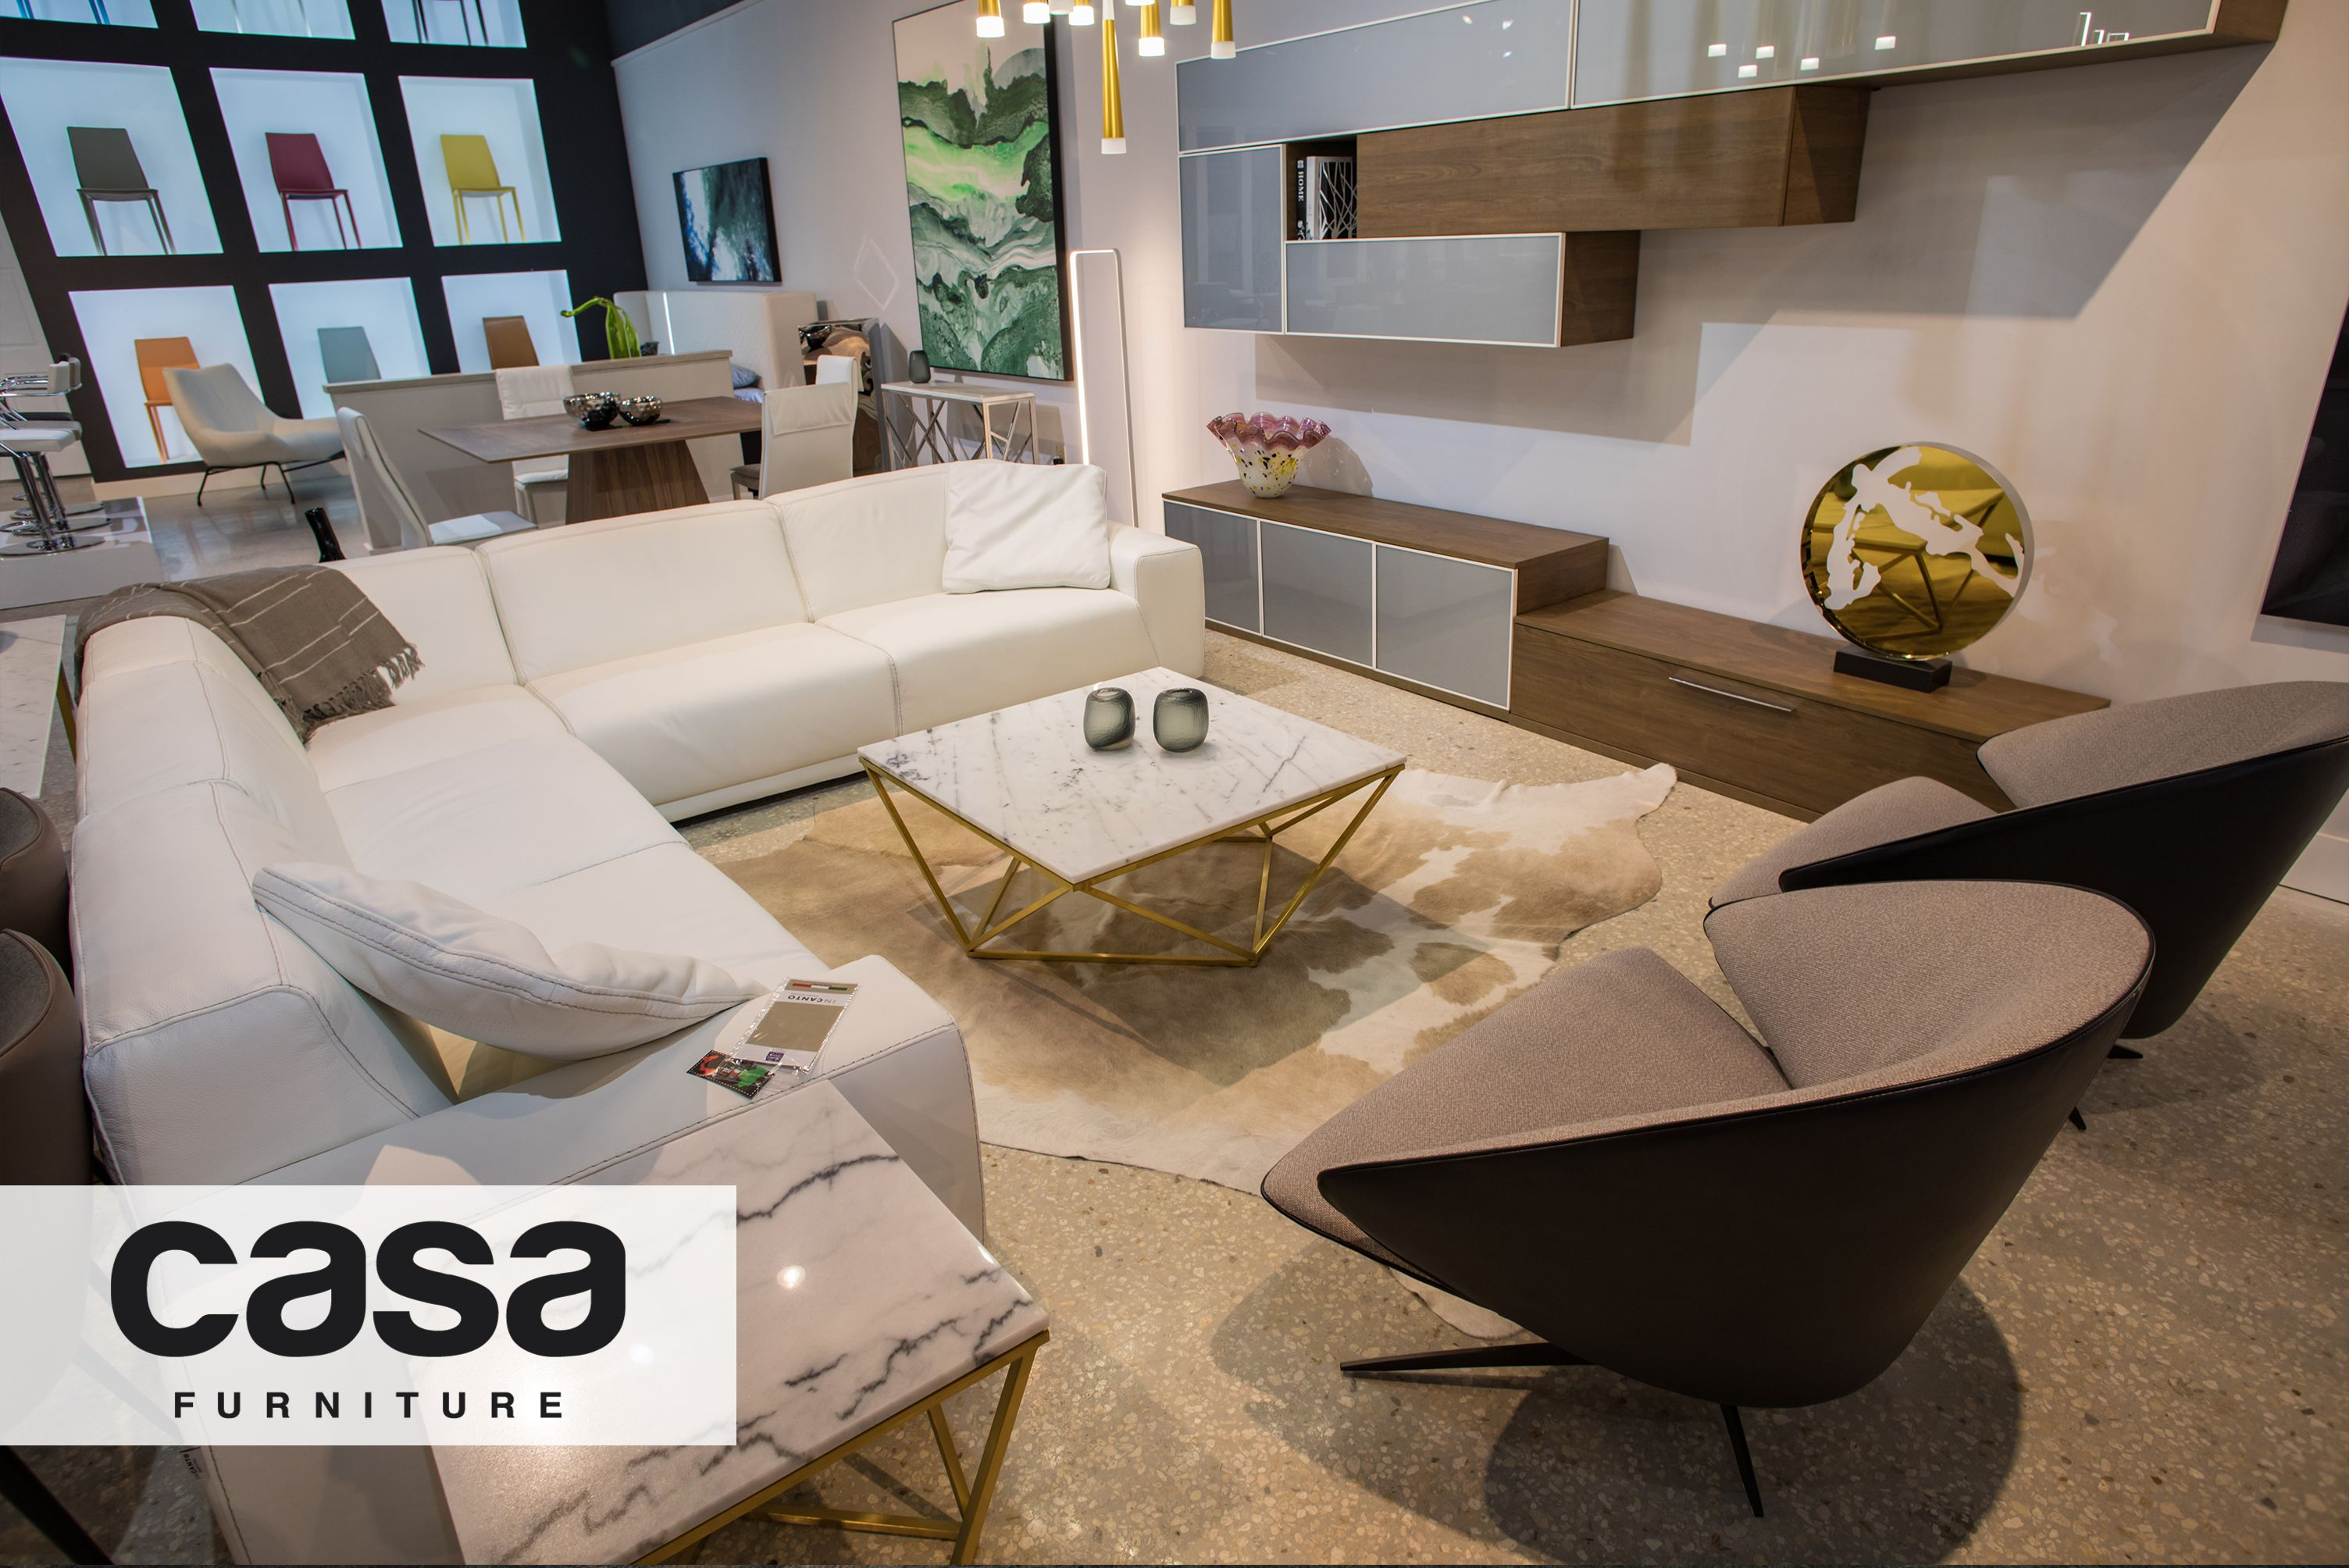 Casa Furniture Offers The Best Contemporary And Modern Furniture